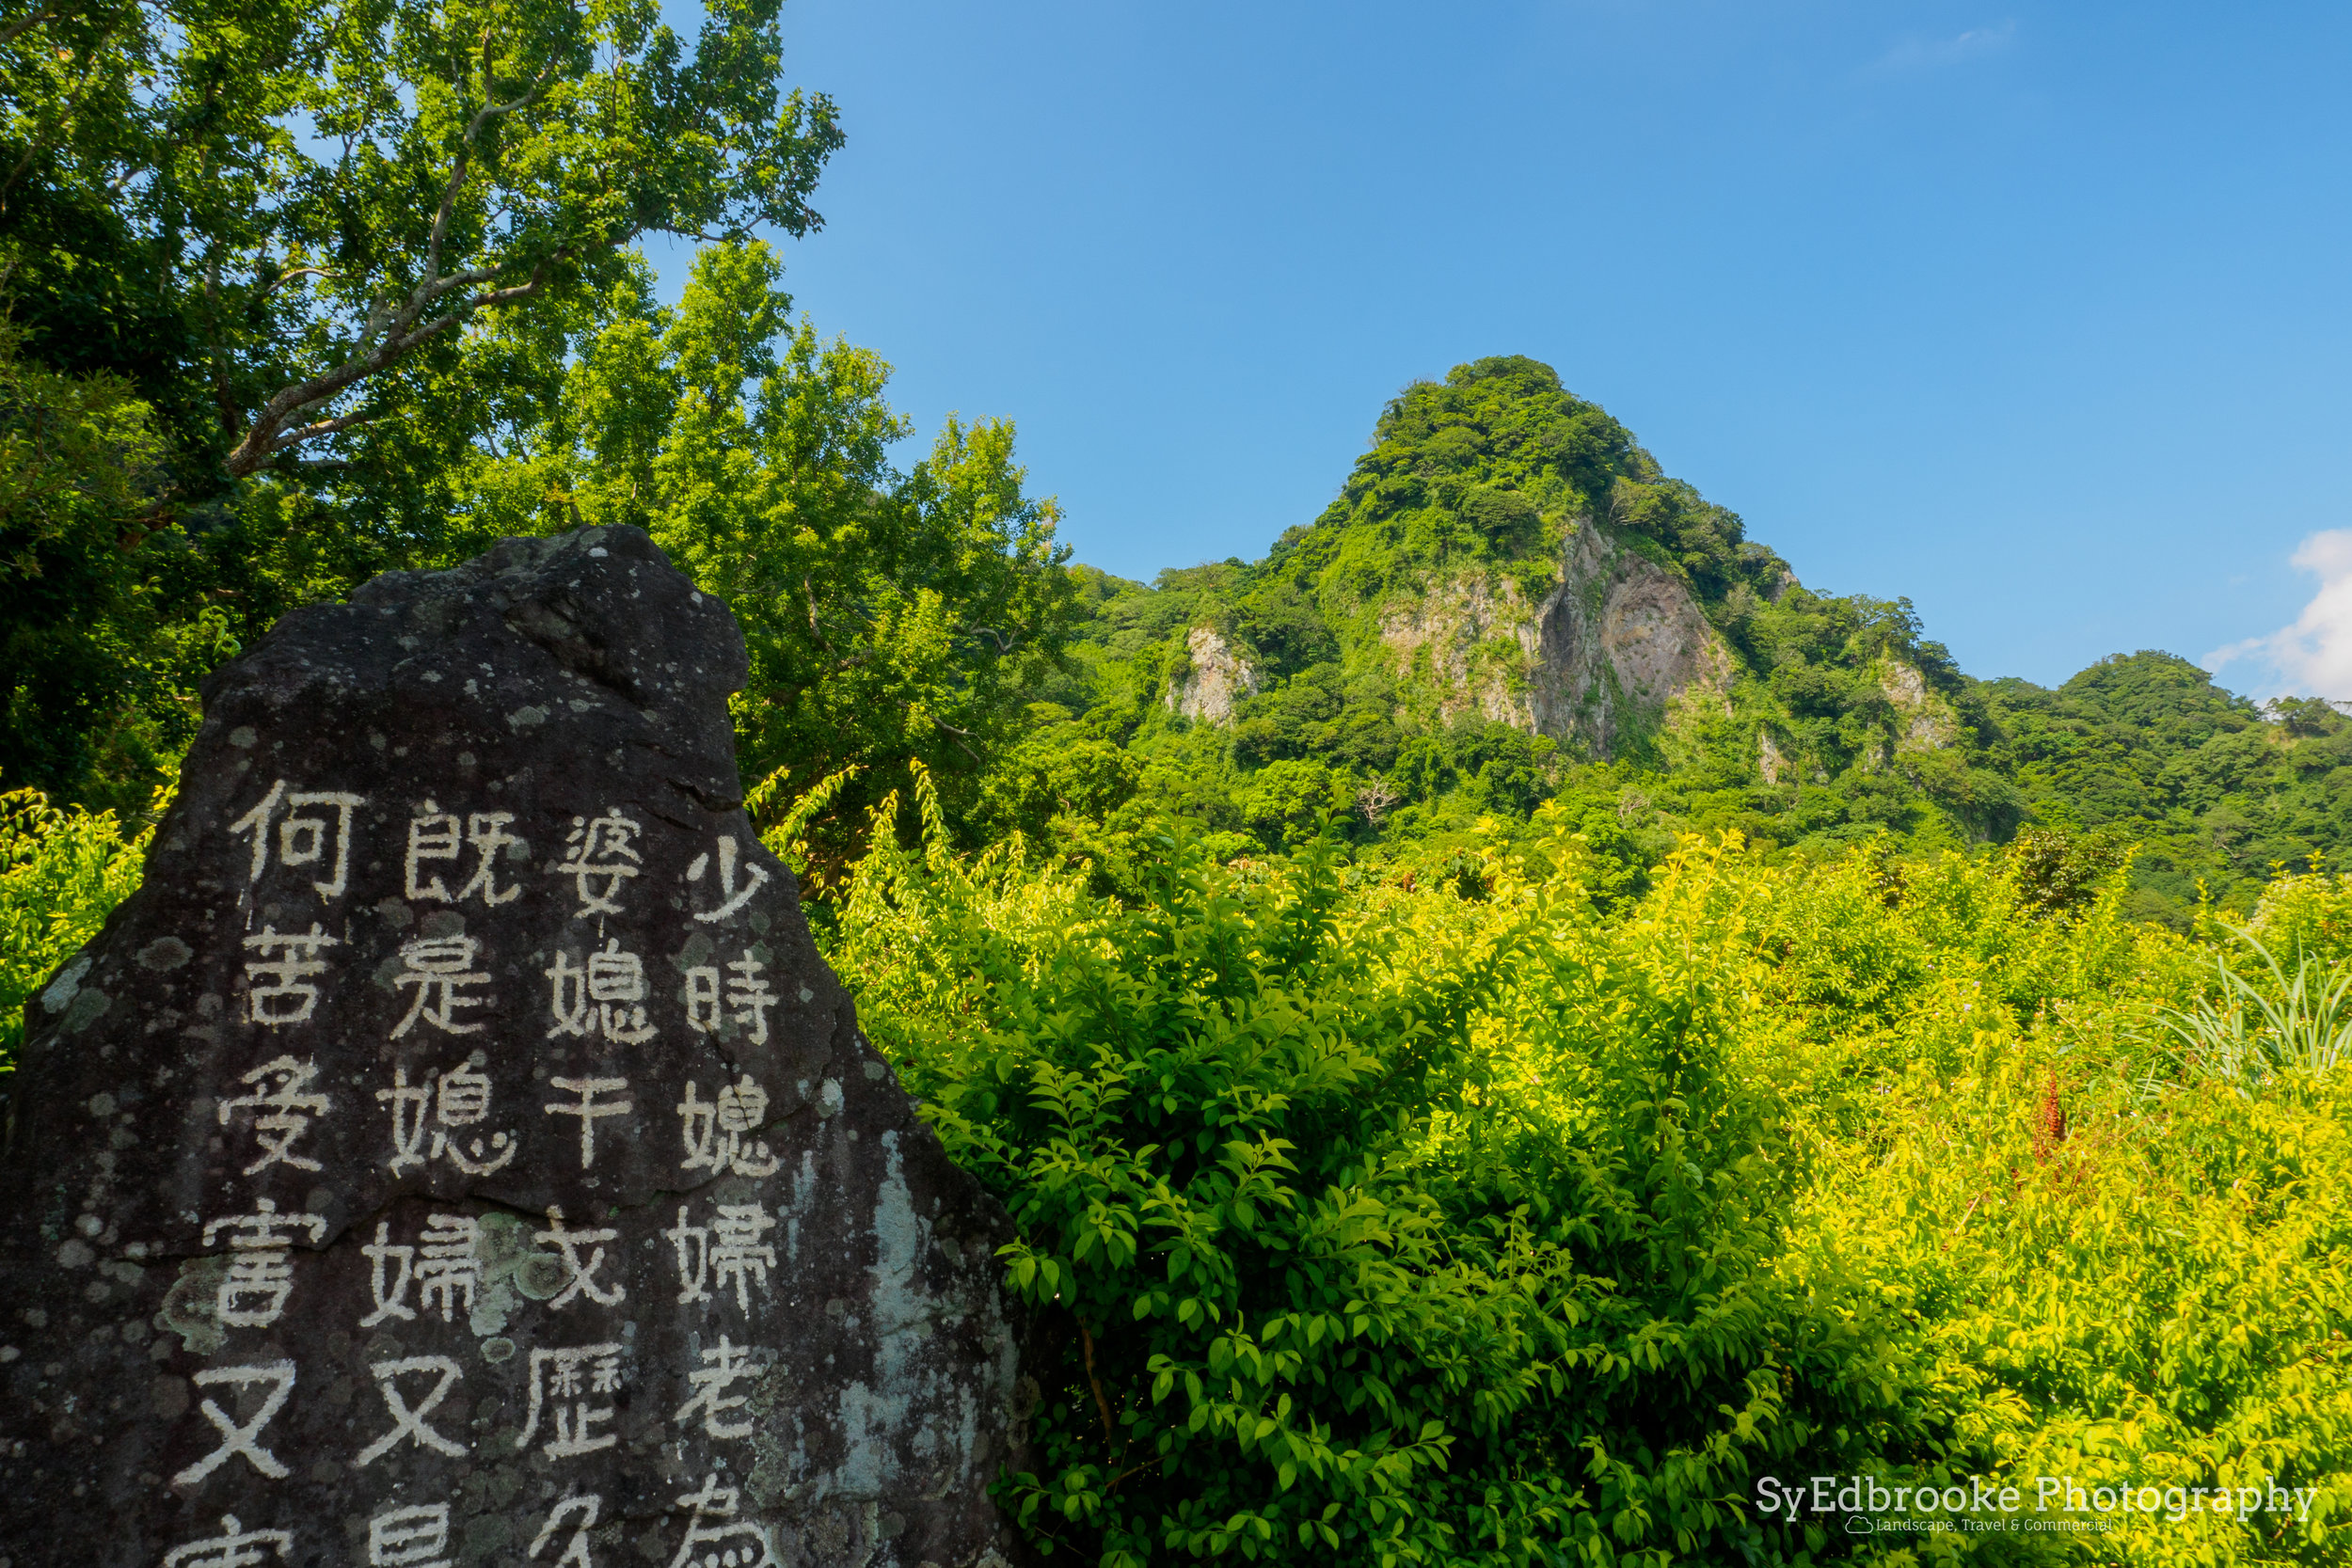 The buddhist temple near the start of the Mt. Bali hike entrance. f11 ISO 100, 1/13, 24mm